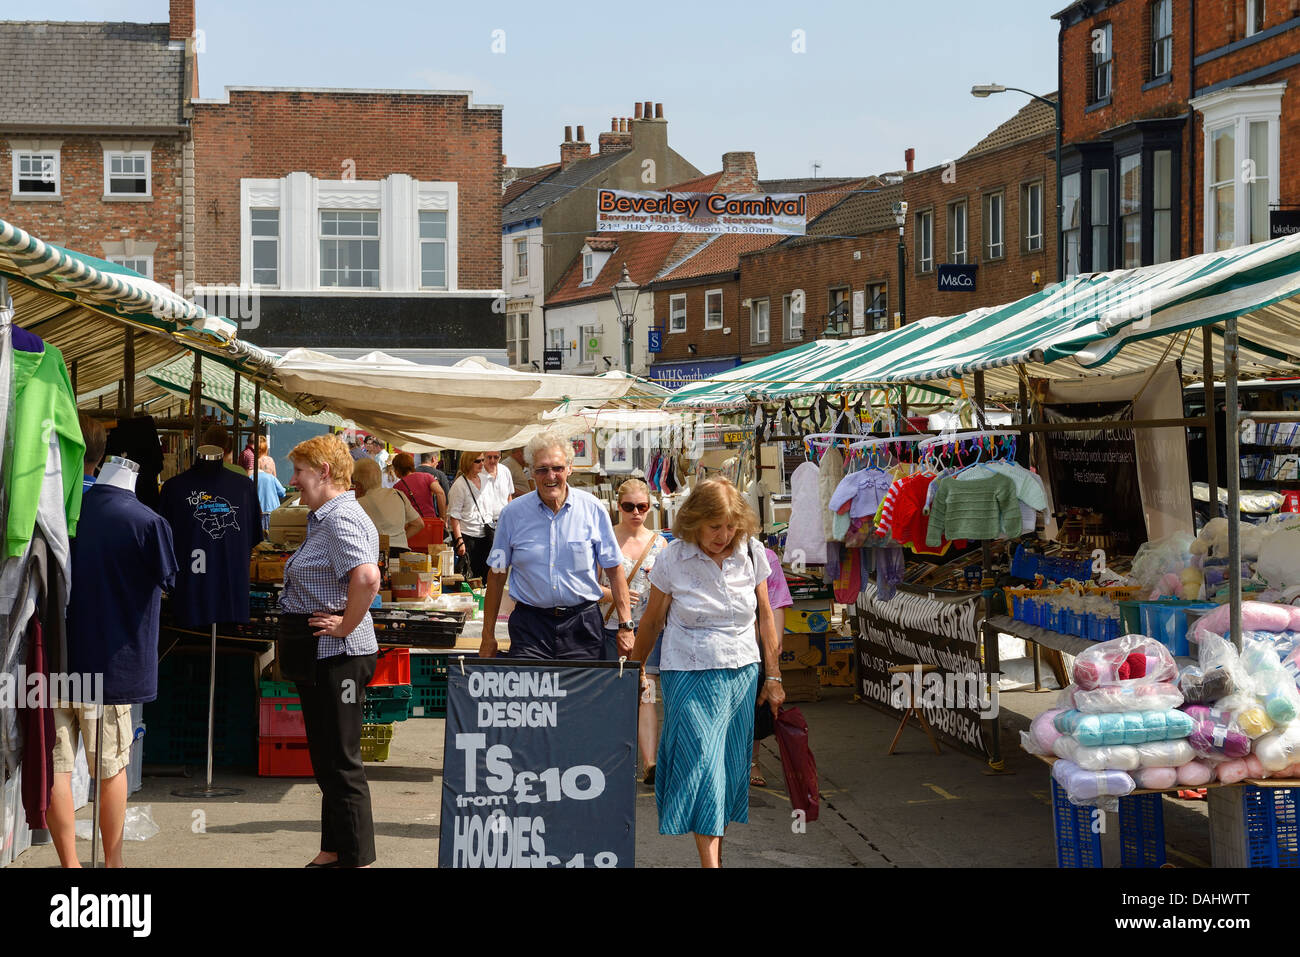 Shoppers browse the market stalls in Beverley town centre UK - Stock Image